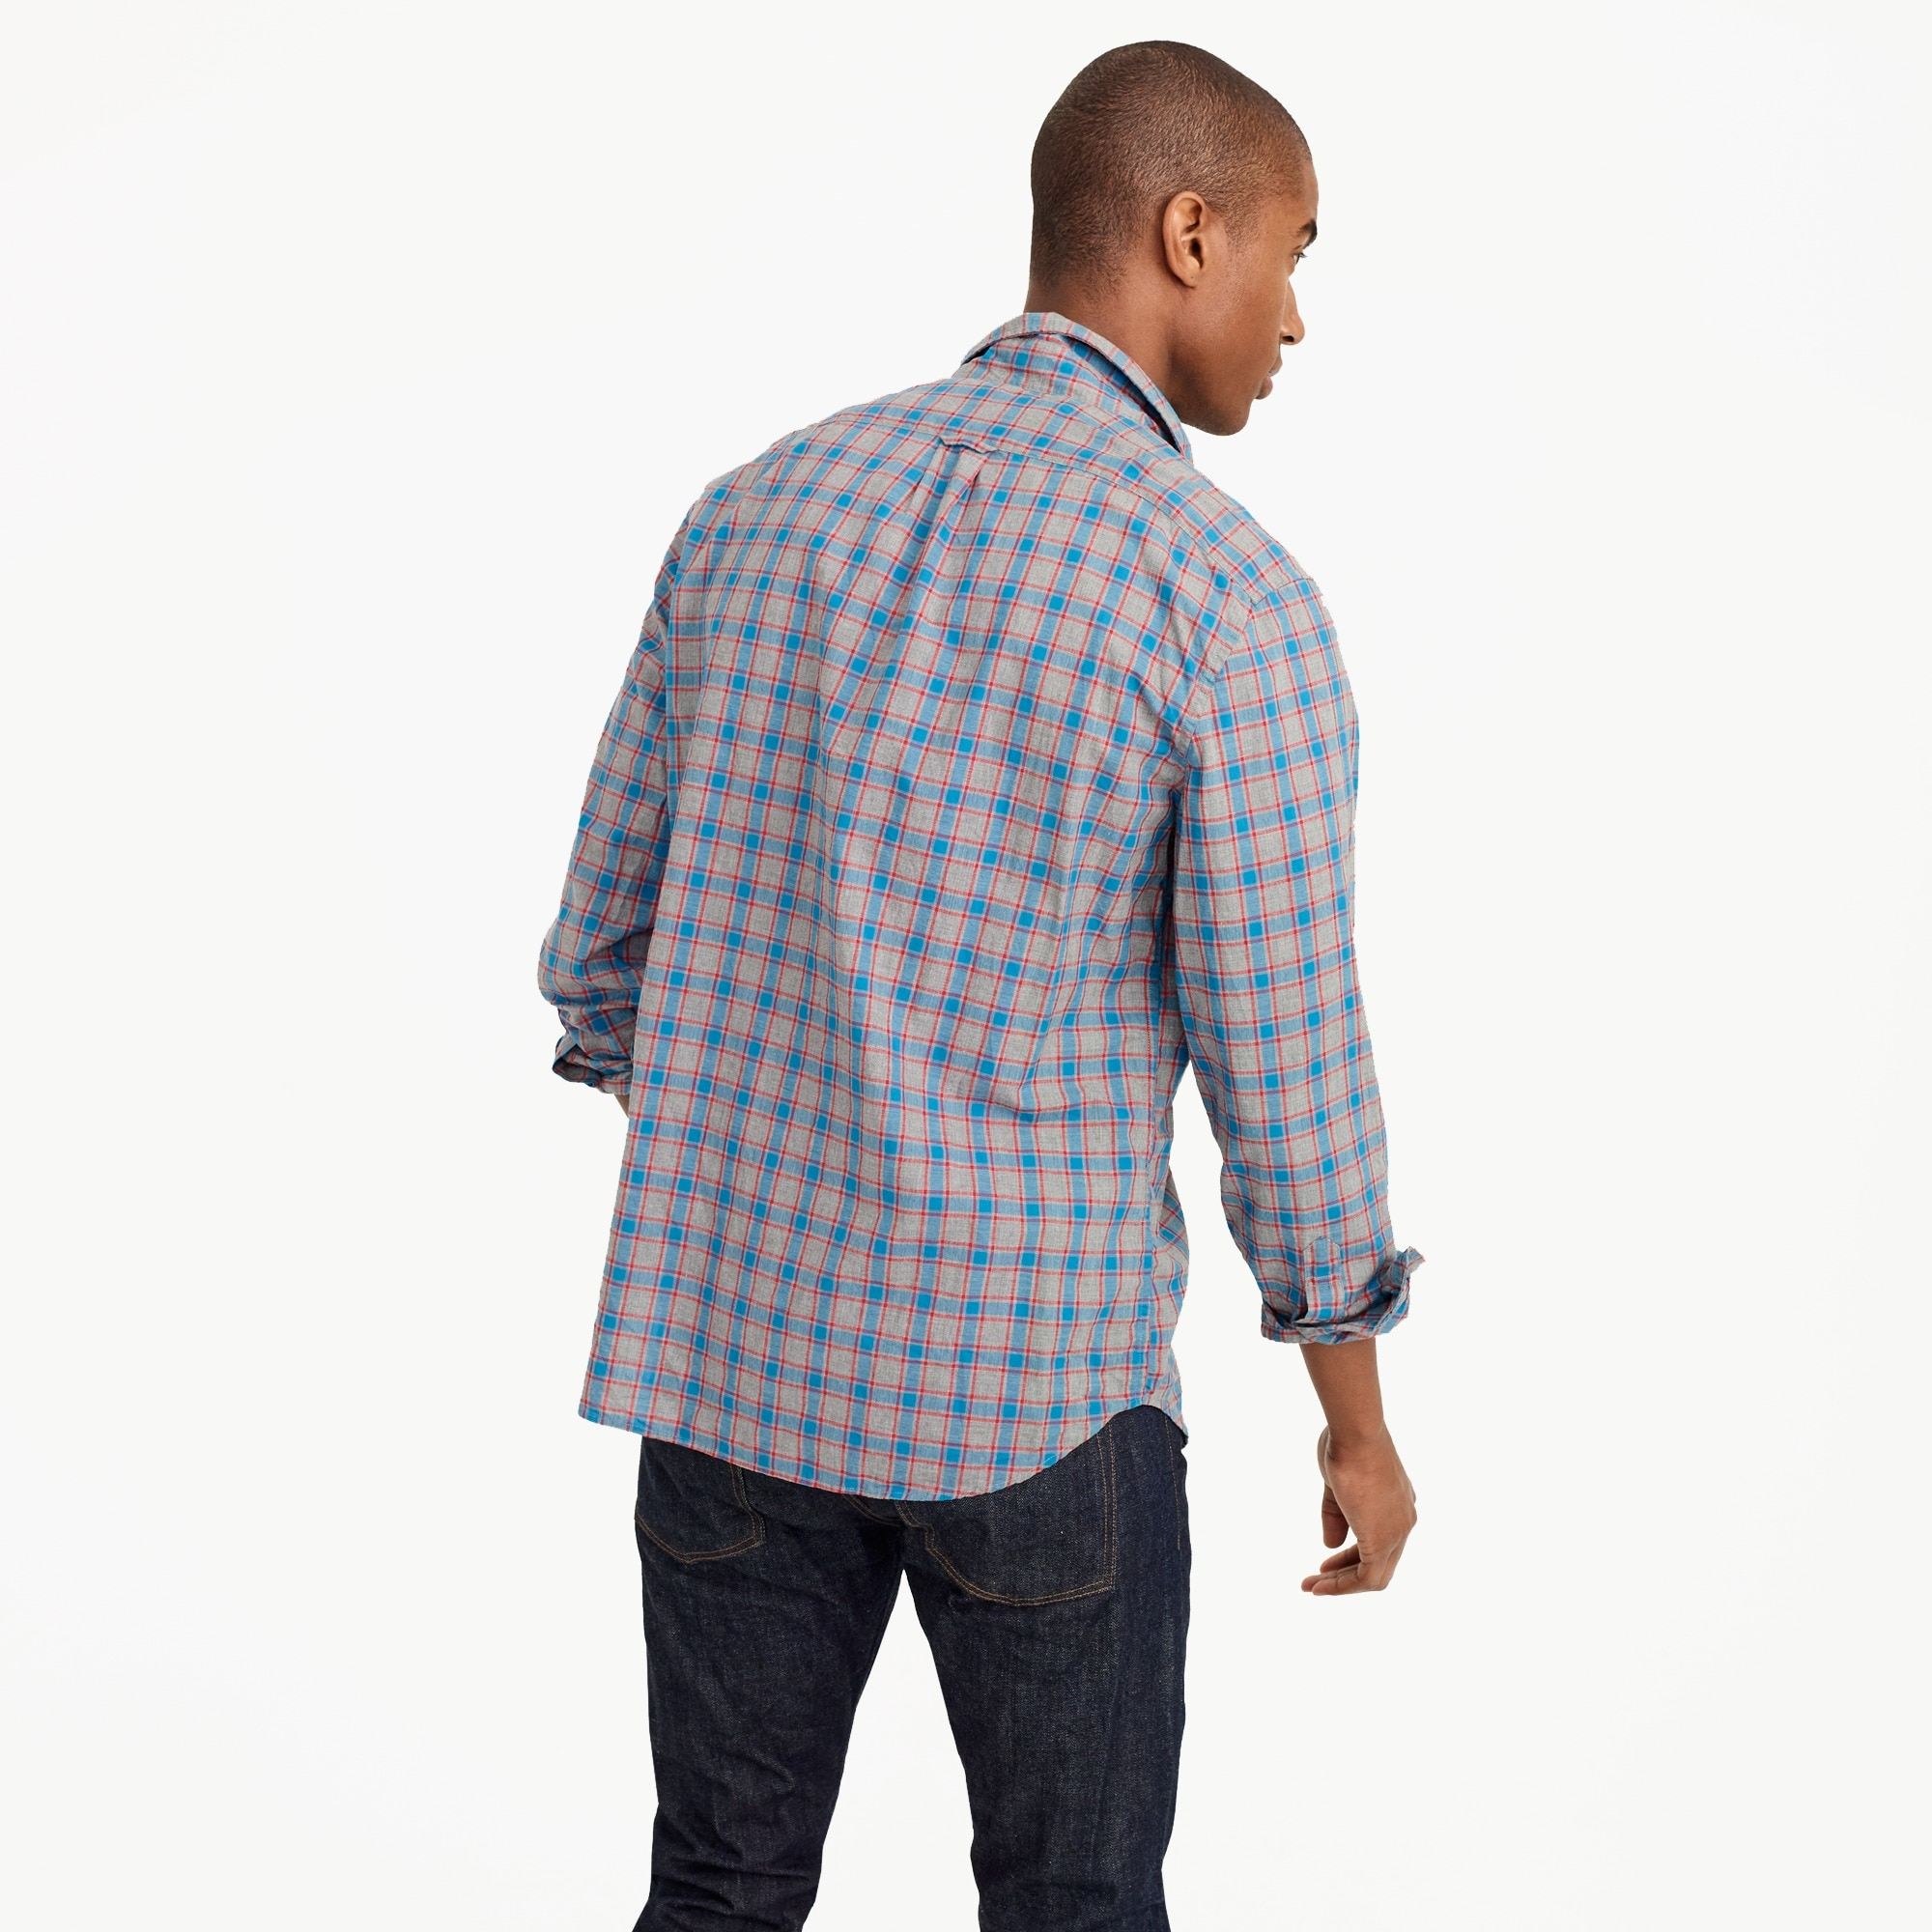 Slim heather poplin shirt in red and blue check